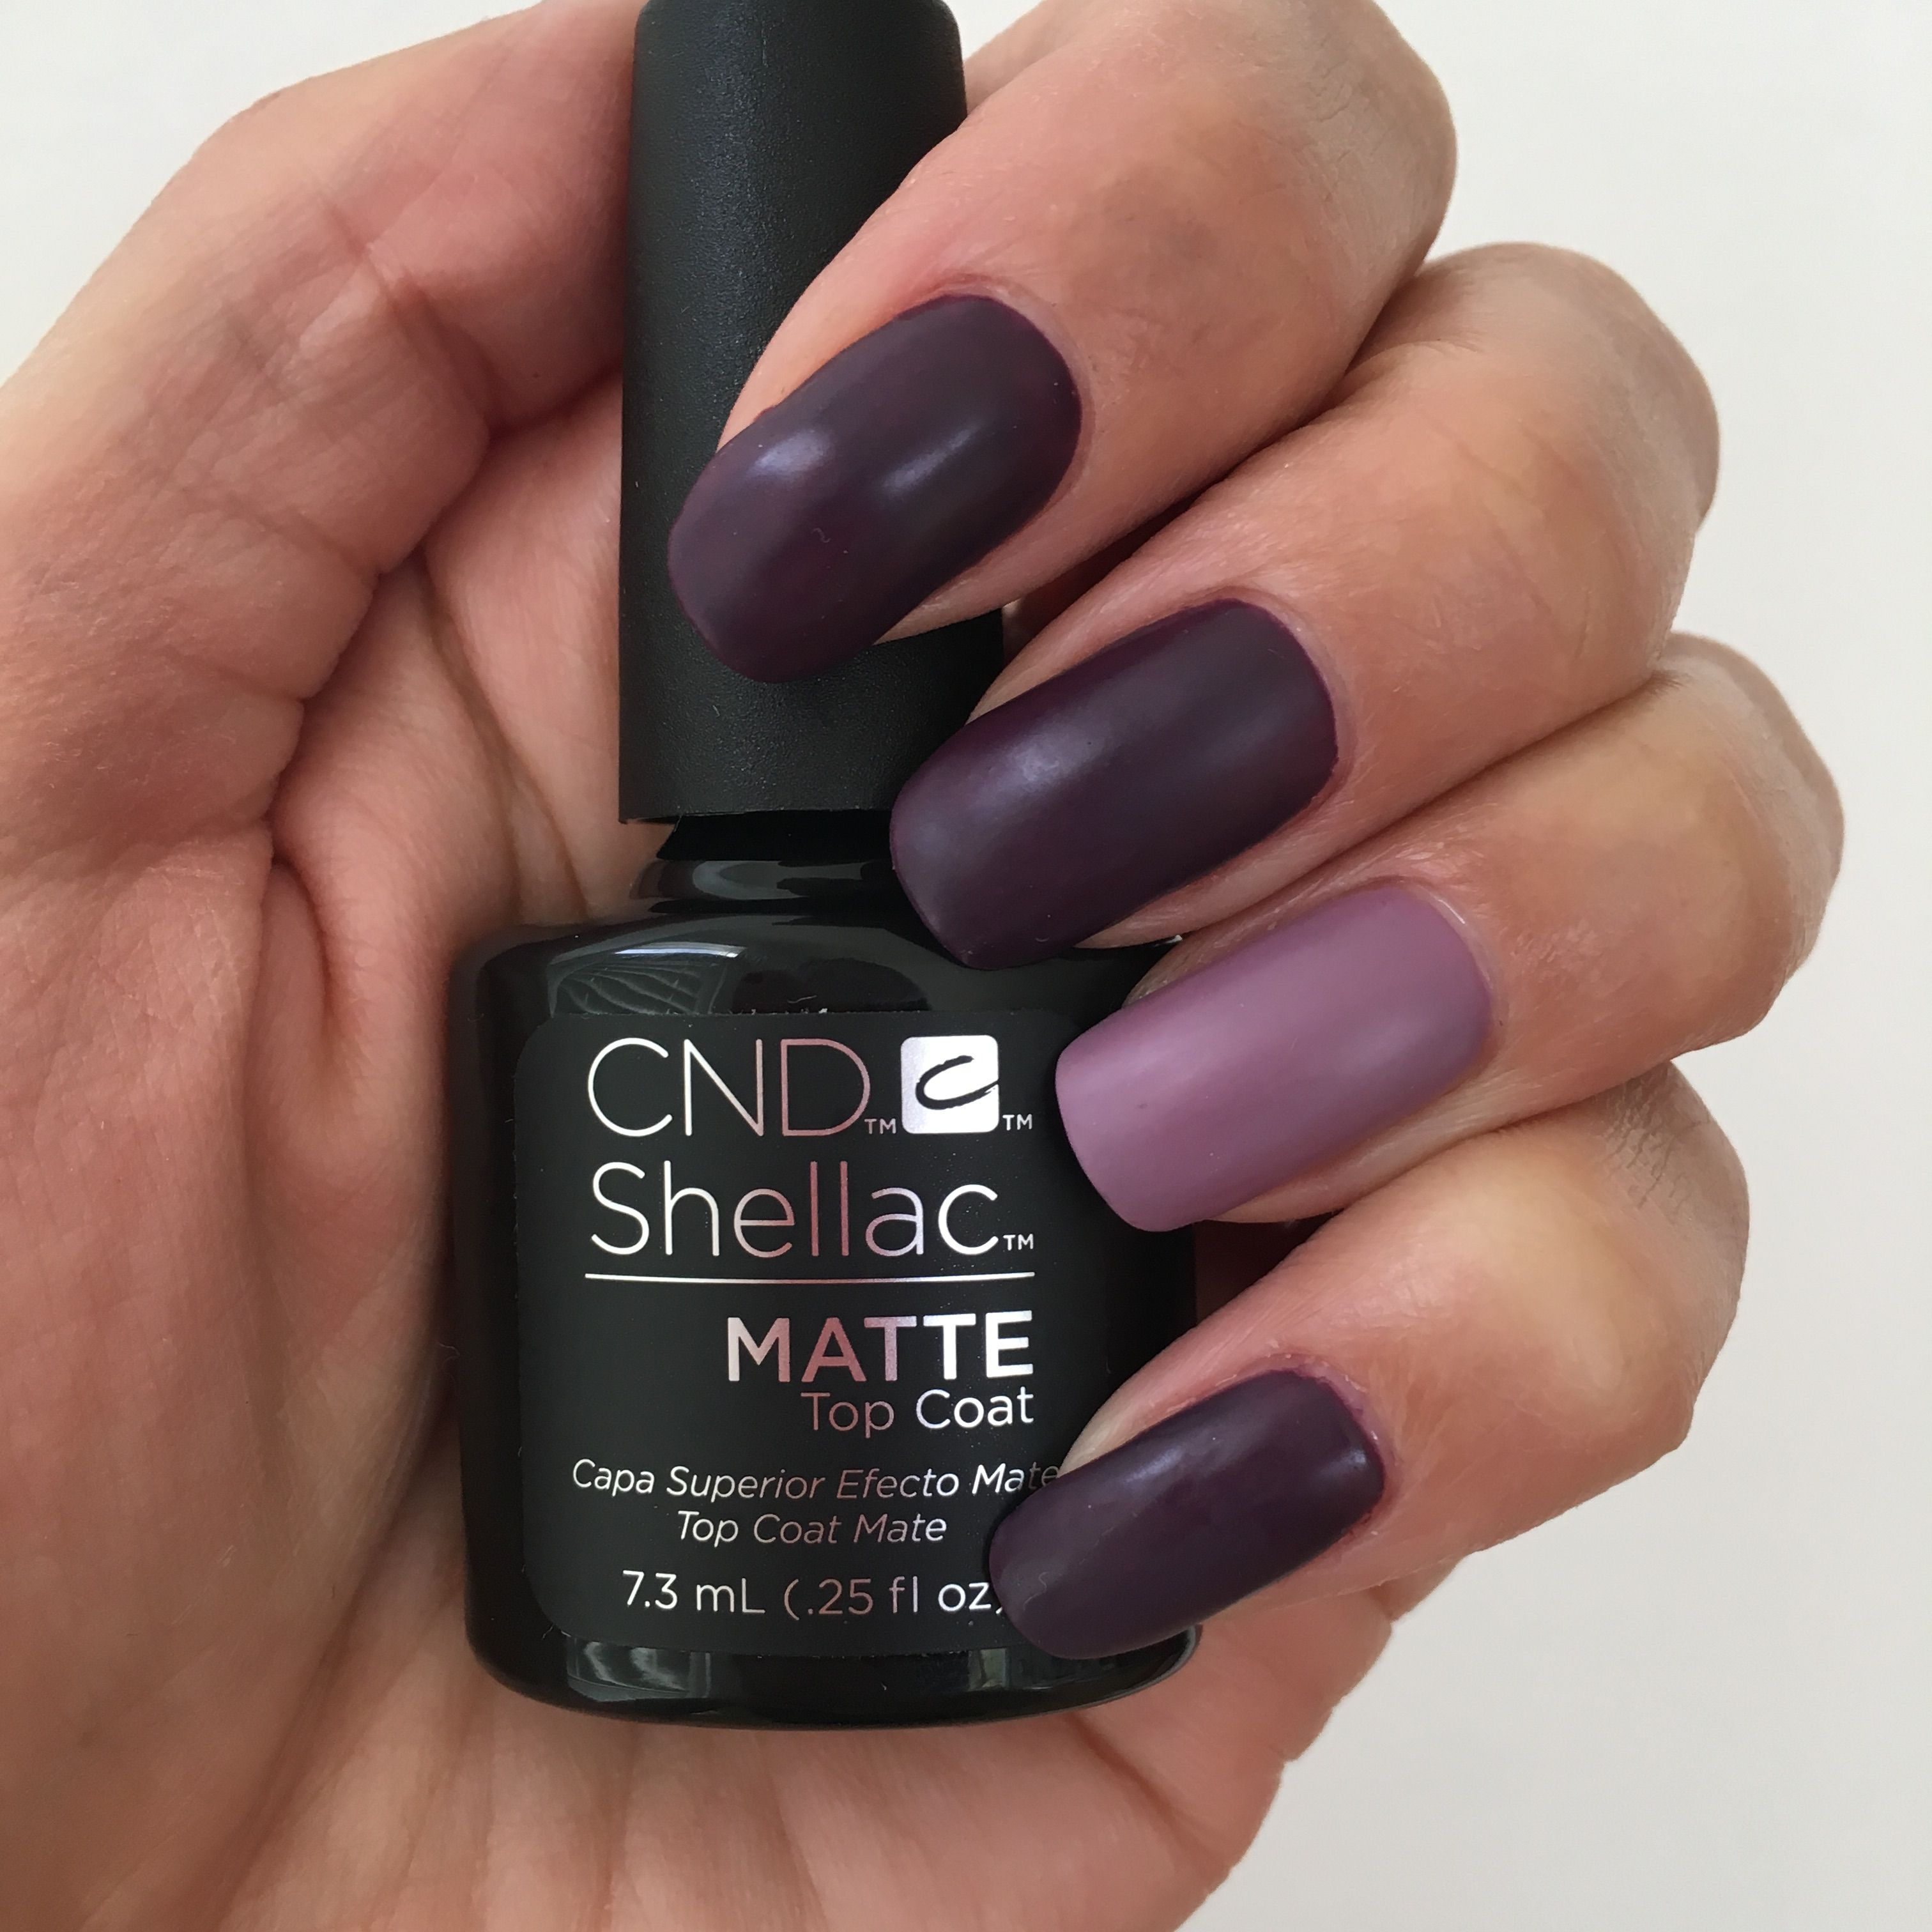 Tried the new CND Shellac Matte top coat with Rock Royalty and Lilac ...